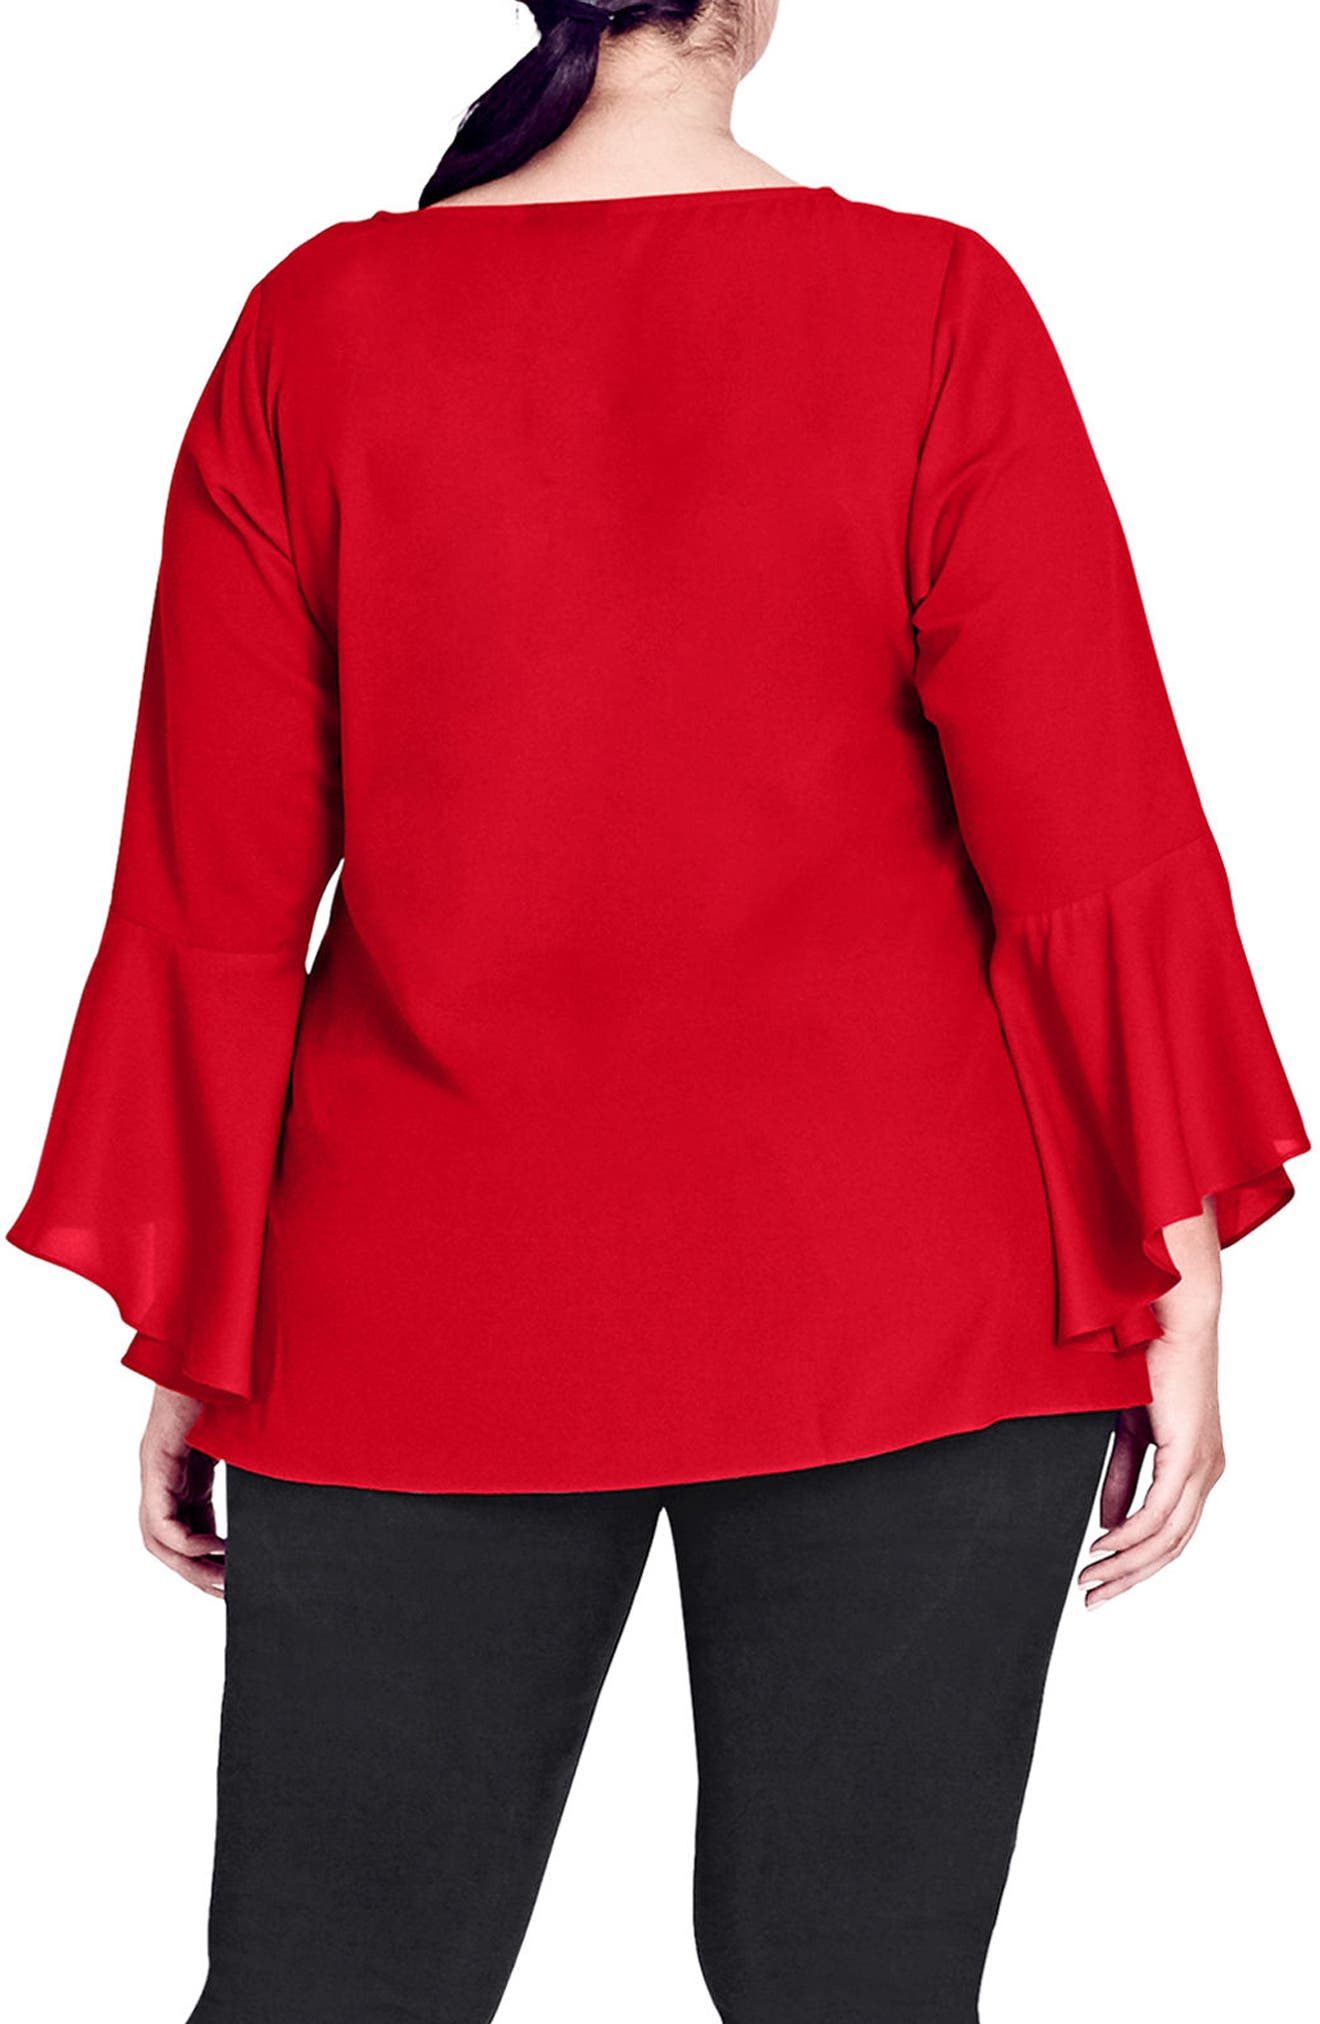 Bell Cuff Zip Top,                             Alternate thumbnail 2, color,                             Vermillion